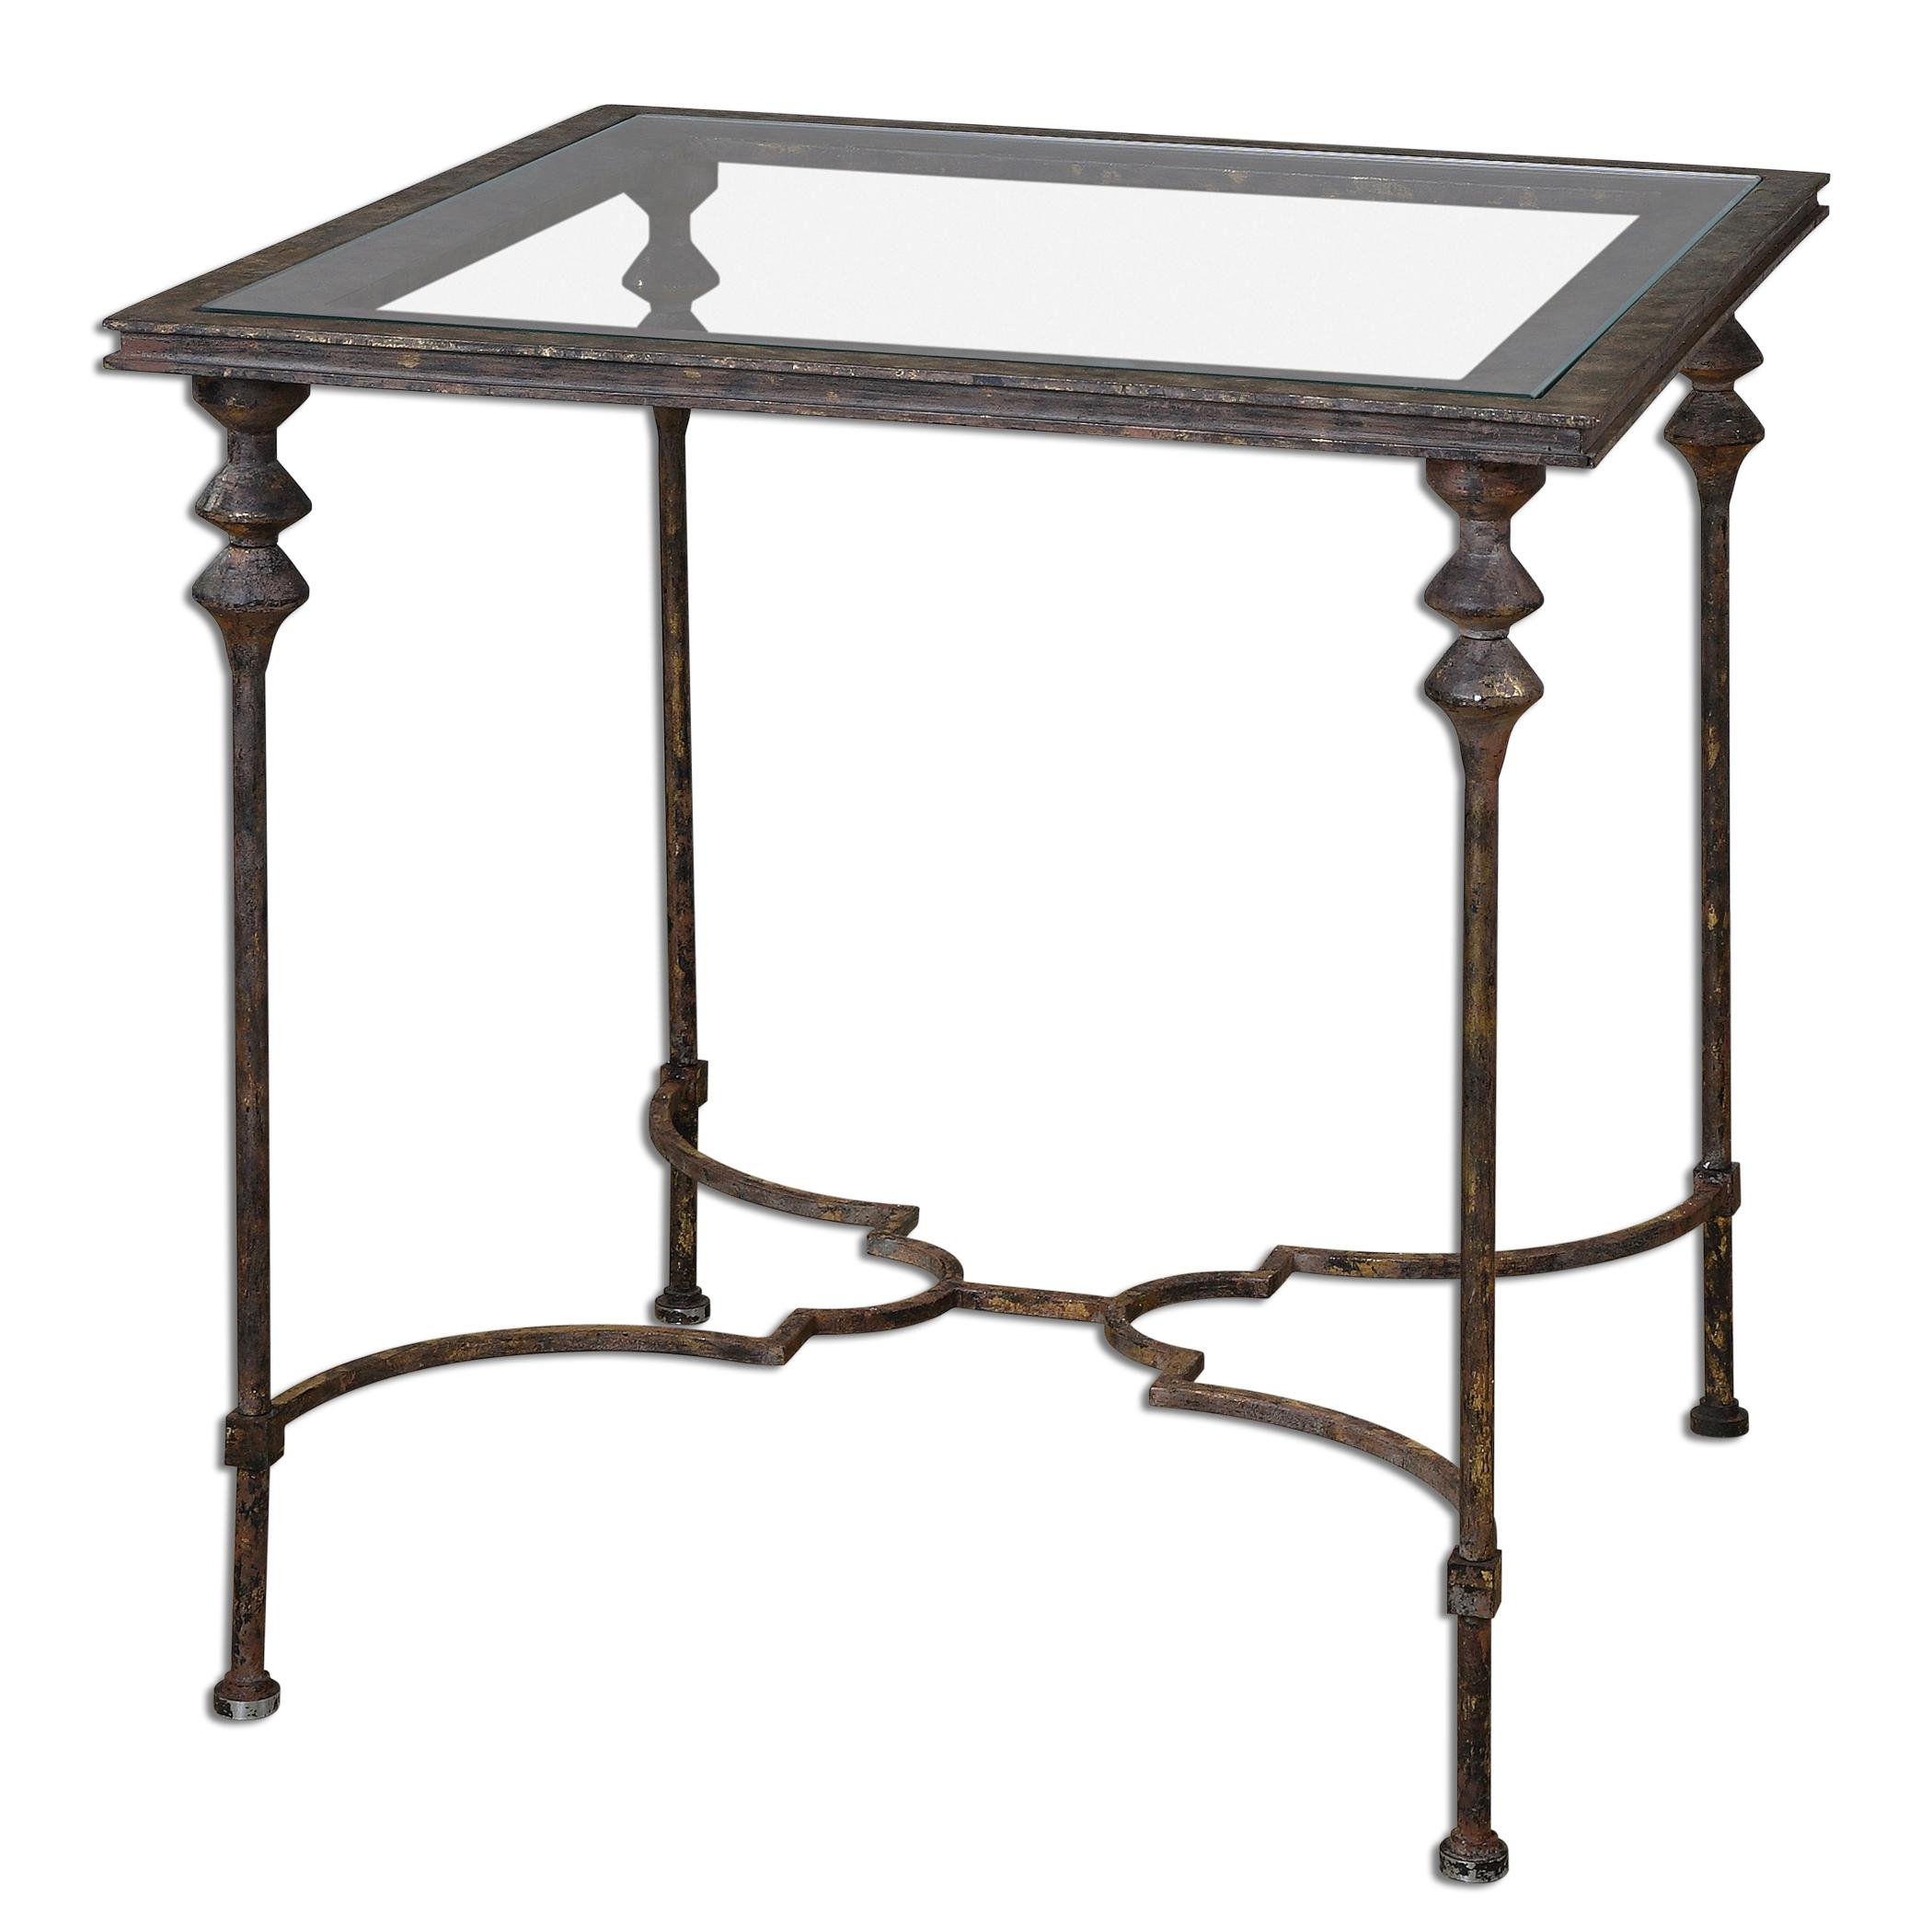 Uttermost Accent Furniture Quillon Glass End Table - Item Number: 24365